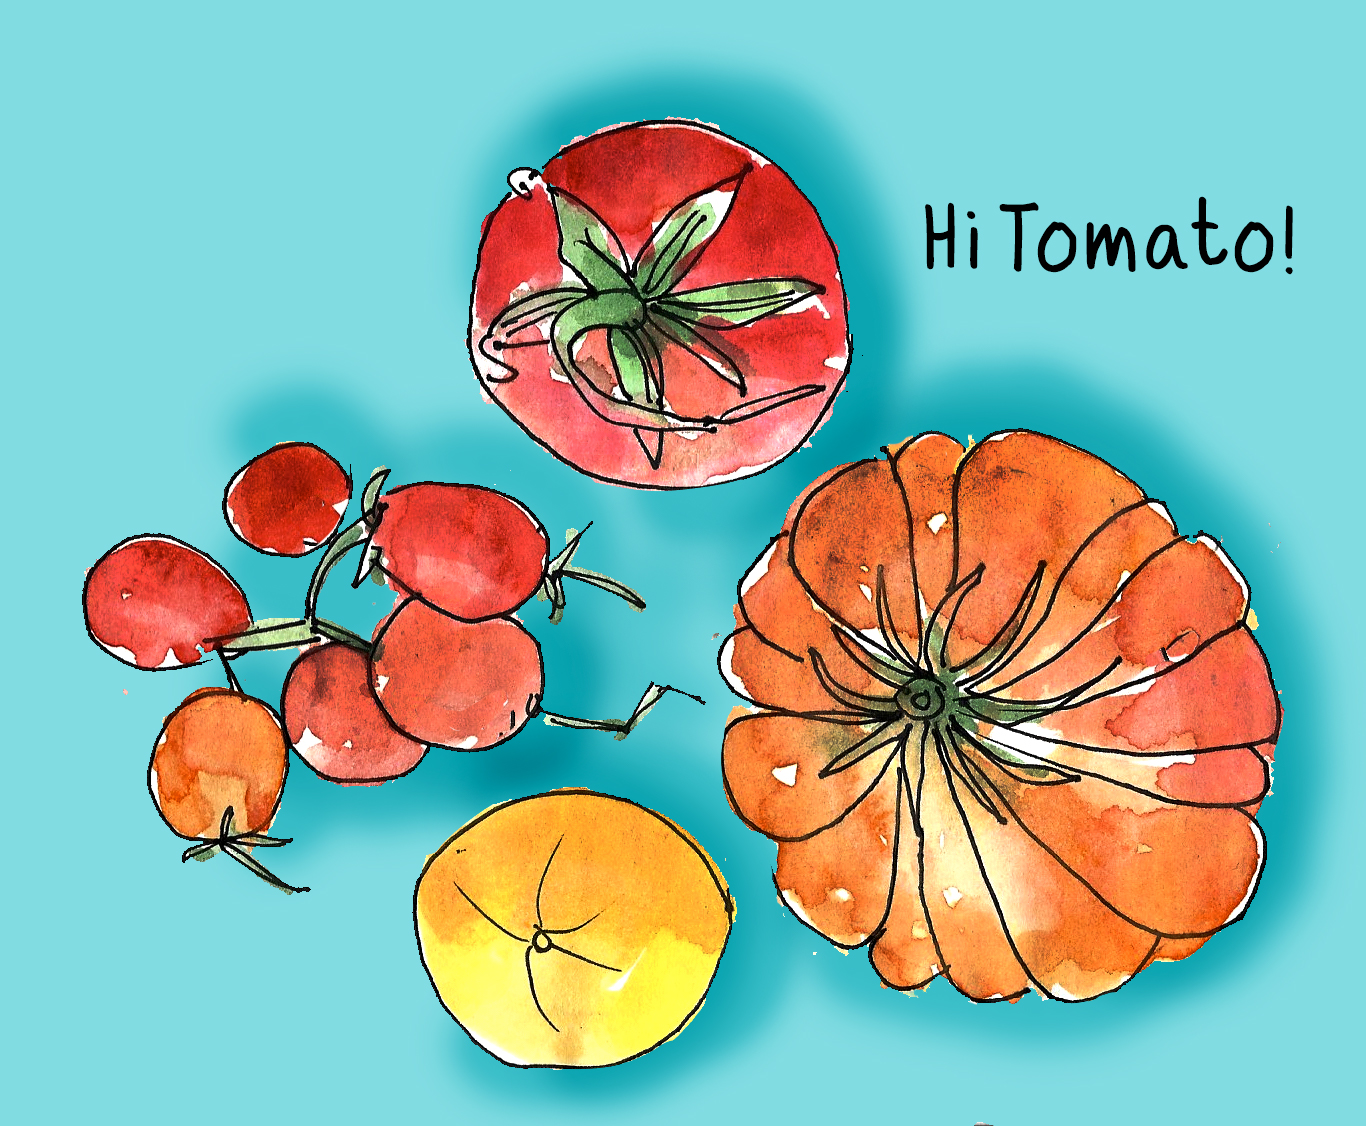 Tomatoes by Alison Garwood-Jones